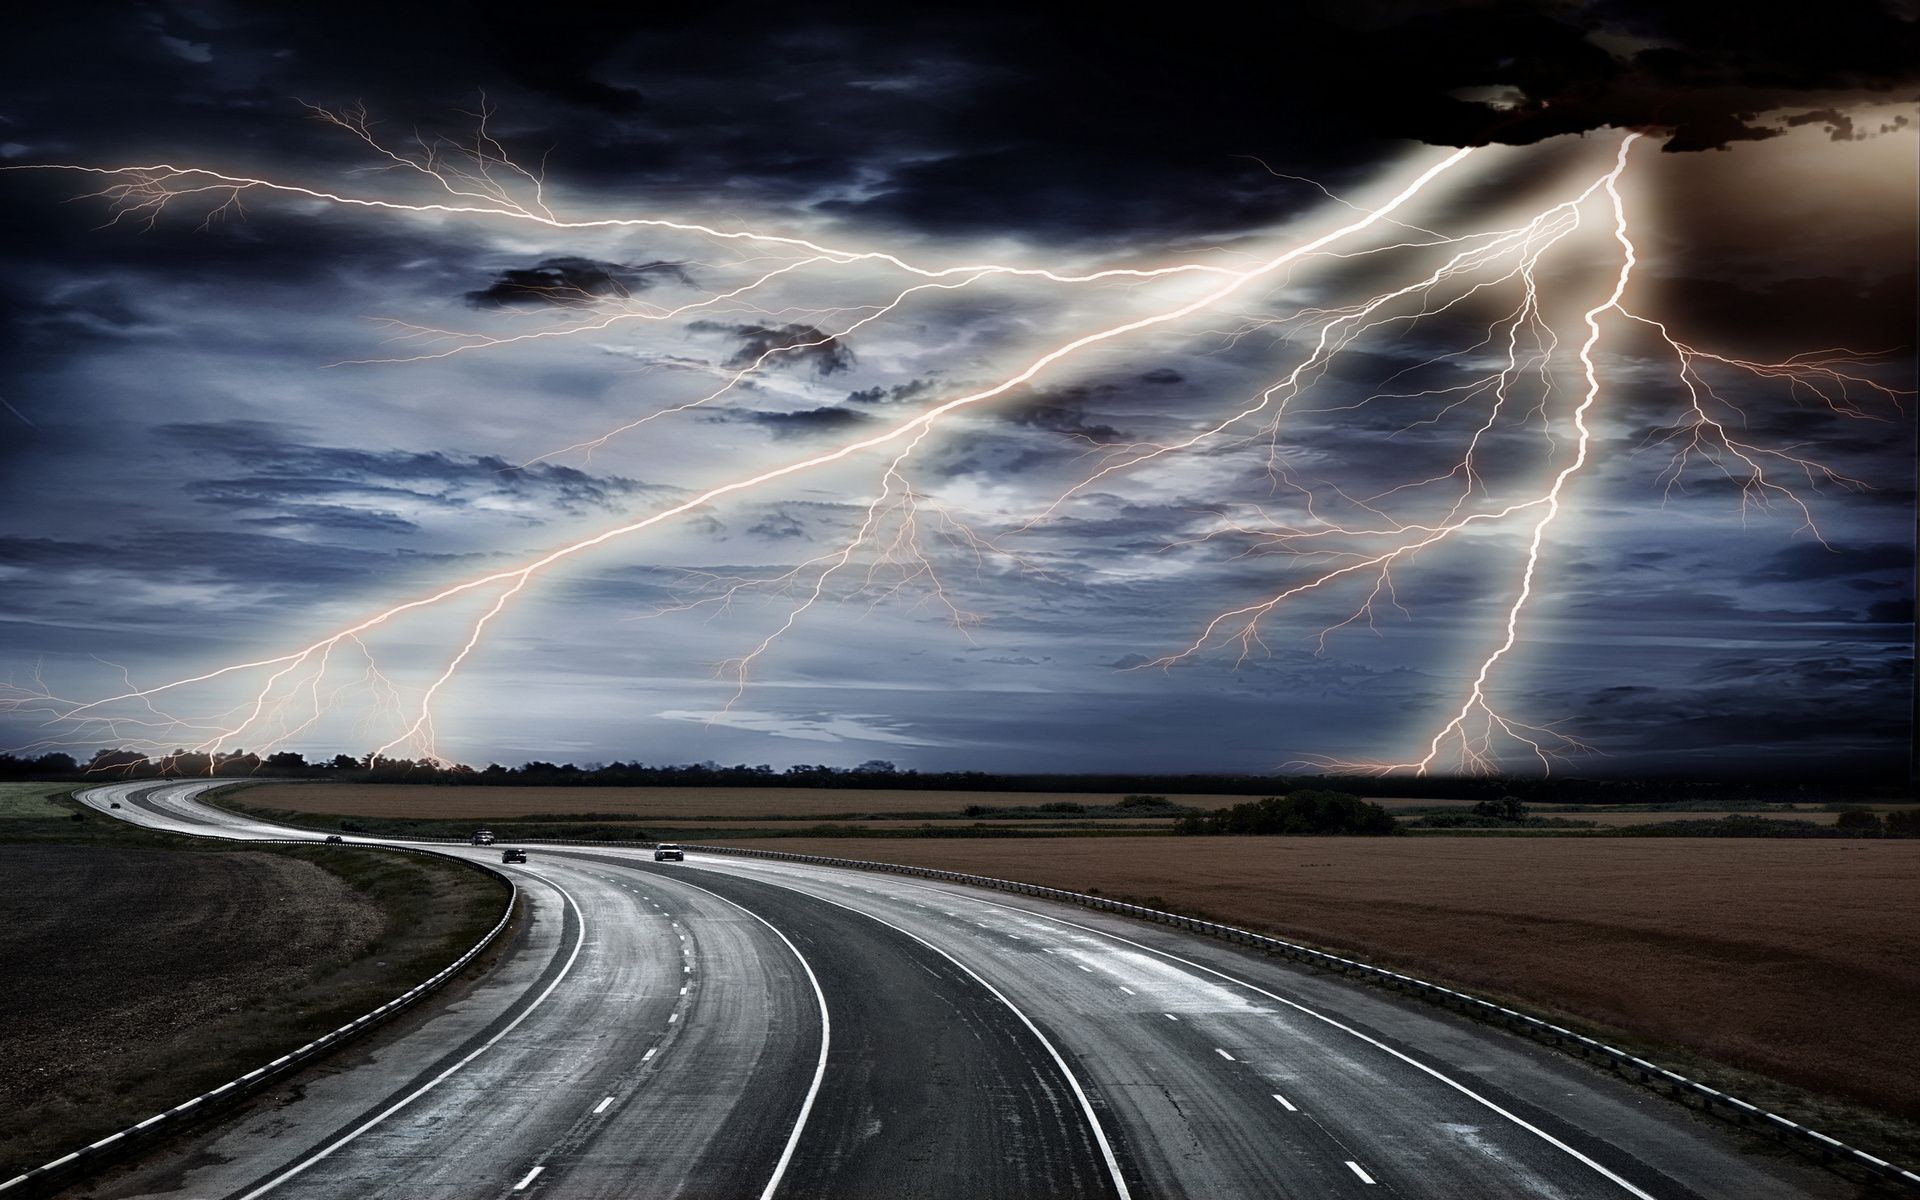 Thunderstorm Backgrounds 1920x1080